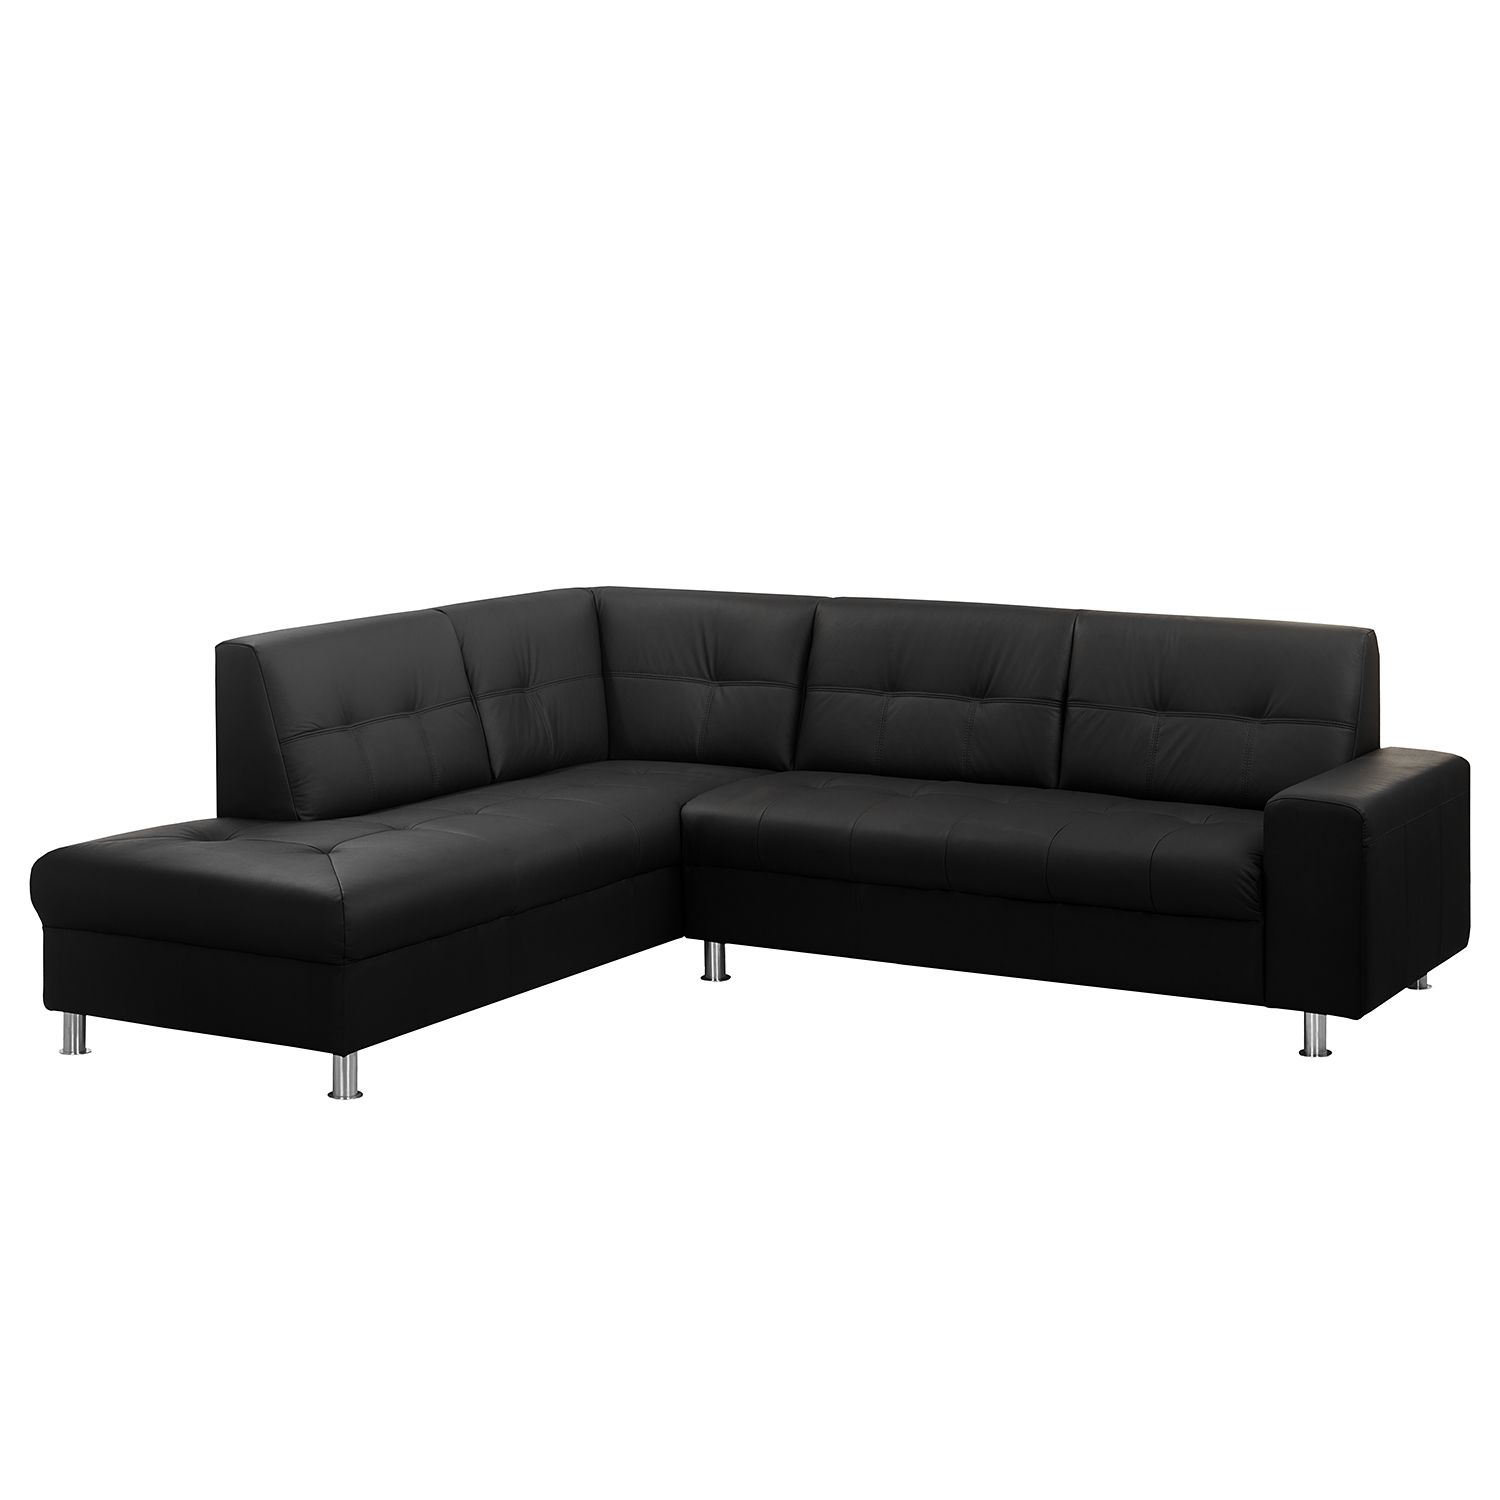 ecksofa straid i echtleder kunstleder ottomane. Black Bedroom Furniture Sets. Home Design Ideas